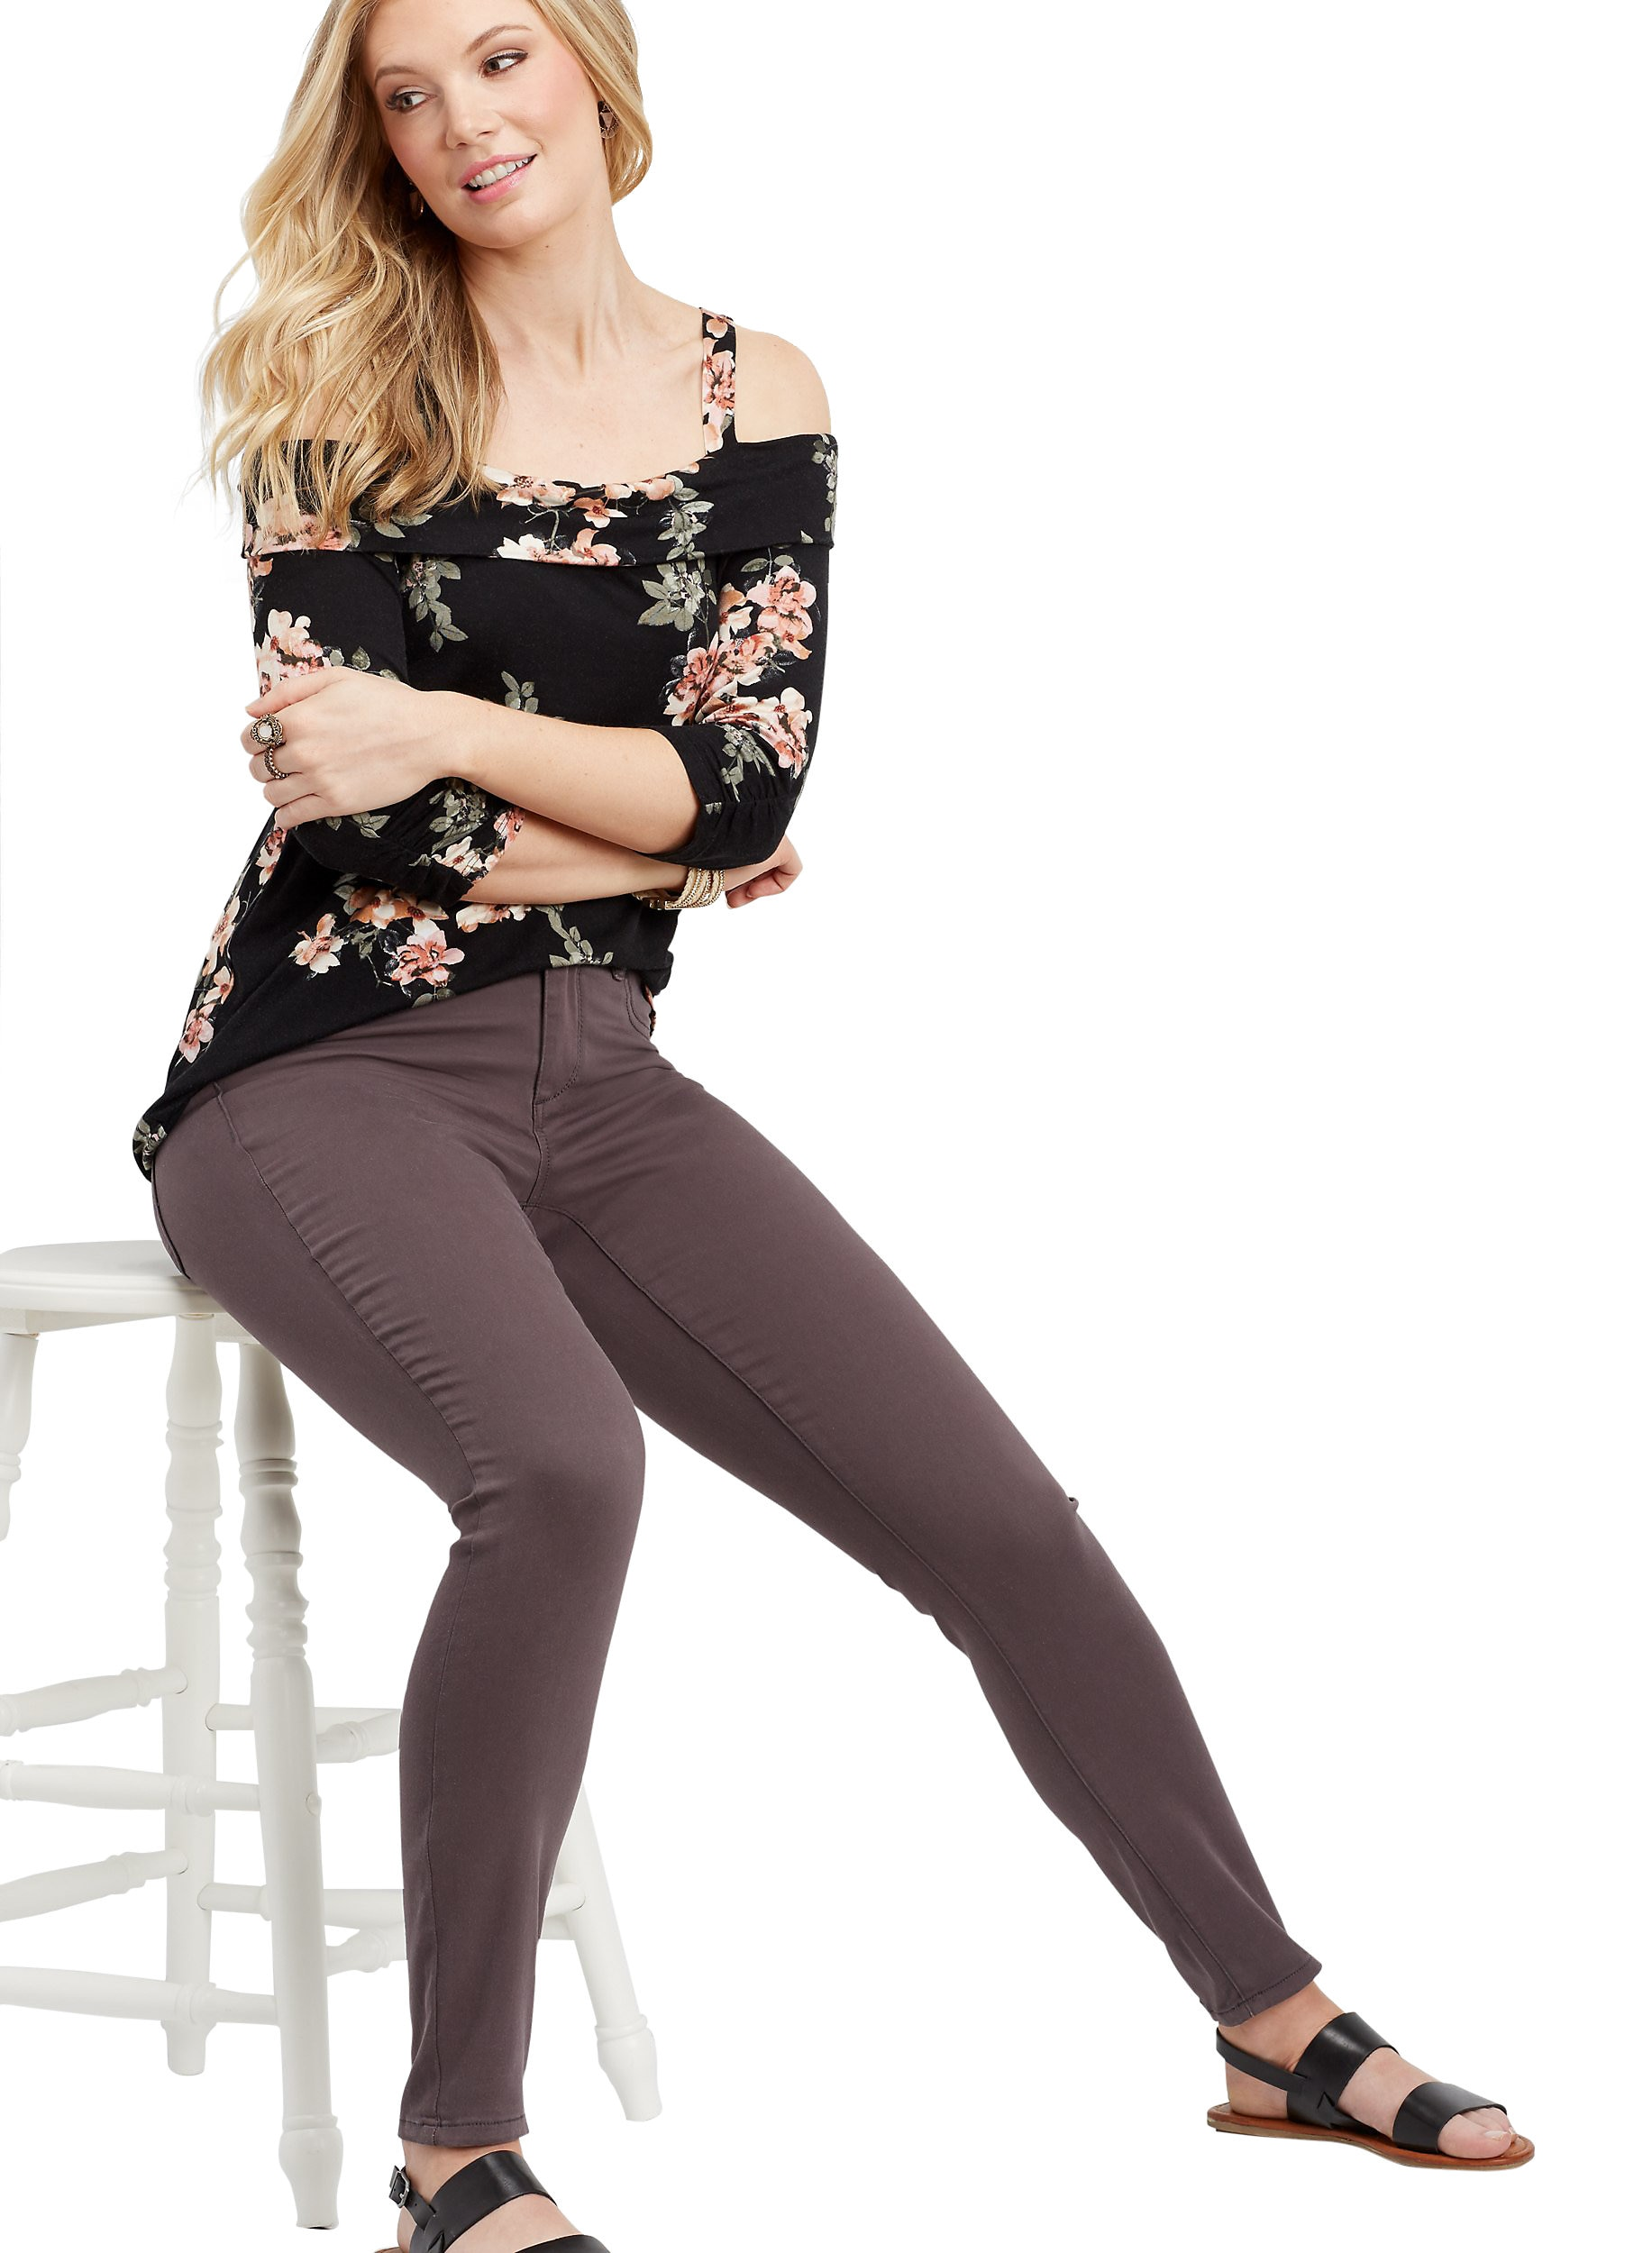 maurices Women's Slate Colored Jeggings - DenimFlex